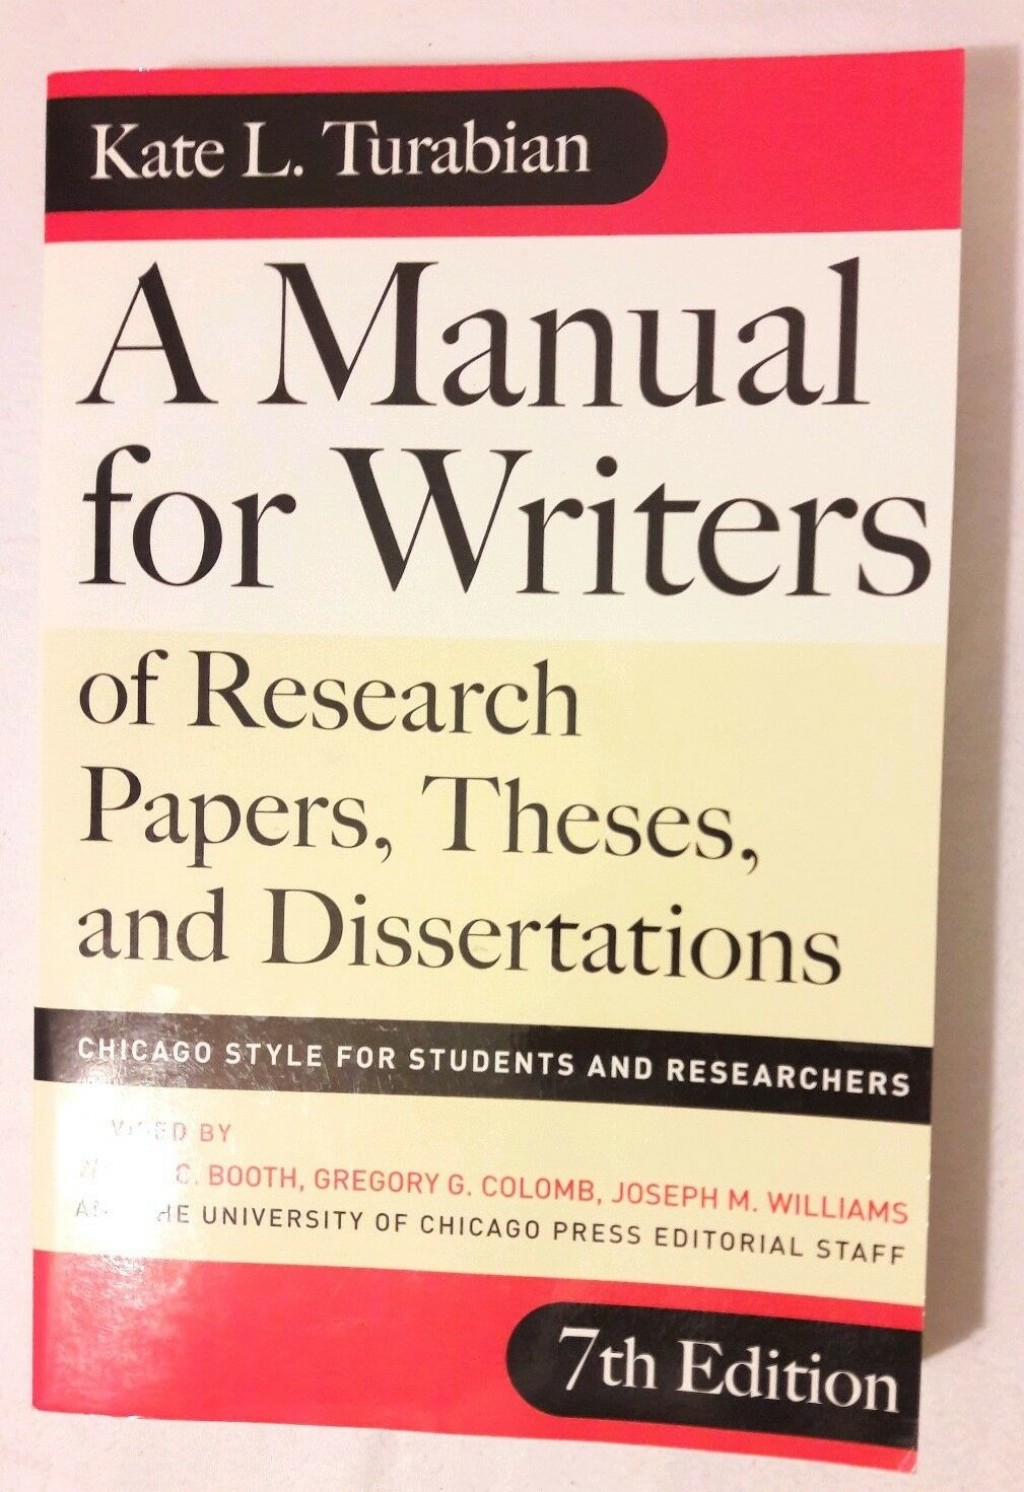 017 Manual For Writers Of Research Papers Theses And Dissertations By Kate L Turabian Paper S Sensational A L. Large